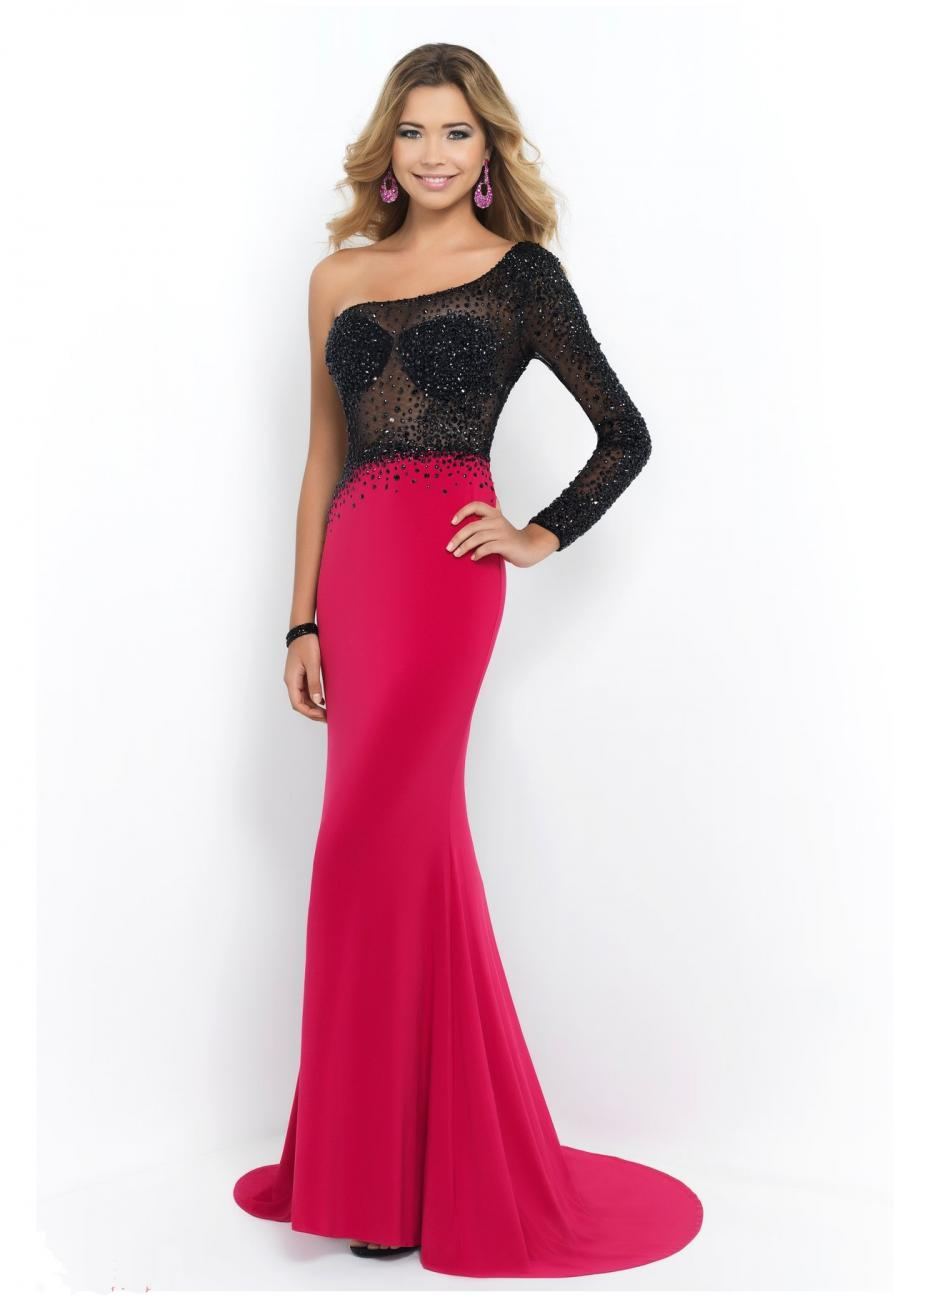 c37cab0542b0 Get Quotations · One Shoulder Long Sleeve beaded See Through Mermaid  Fuschia Prom Dress Vestidos De Festas Longo Vestido